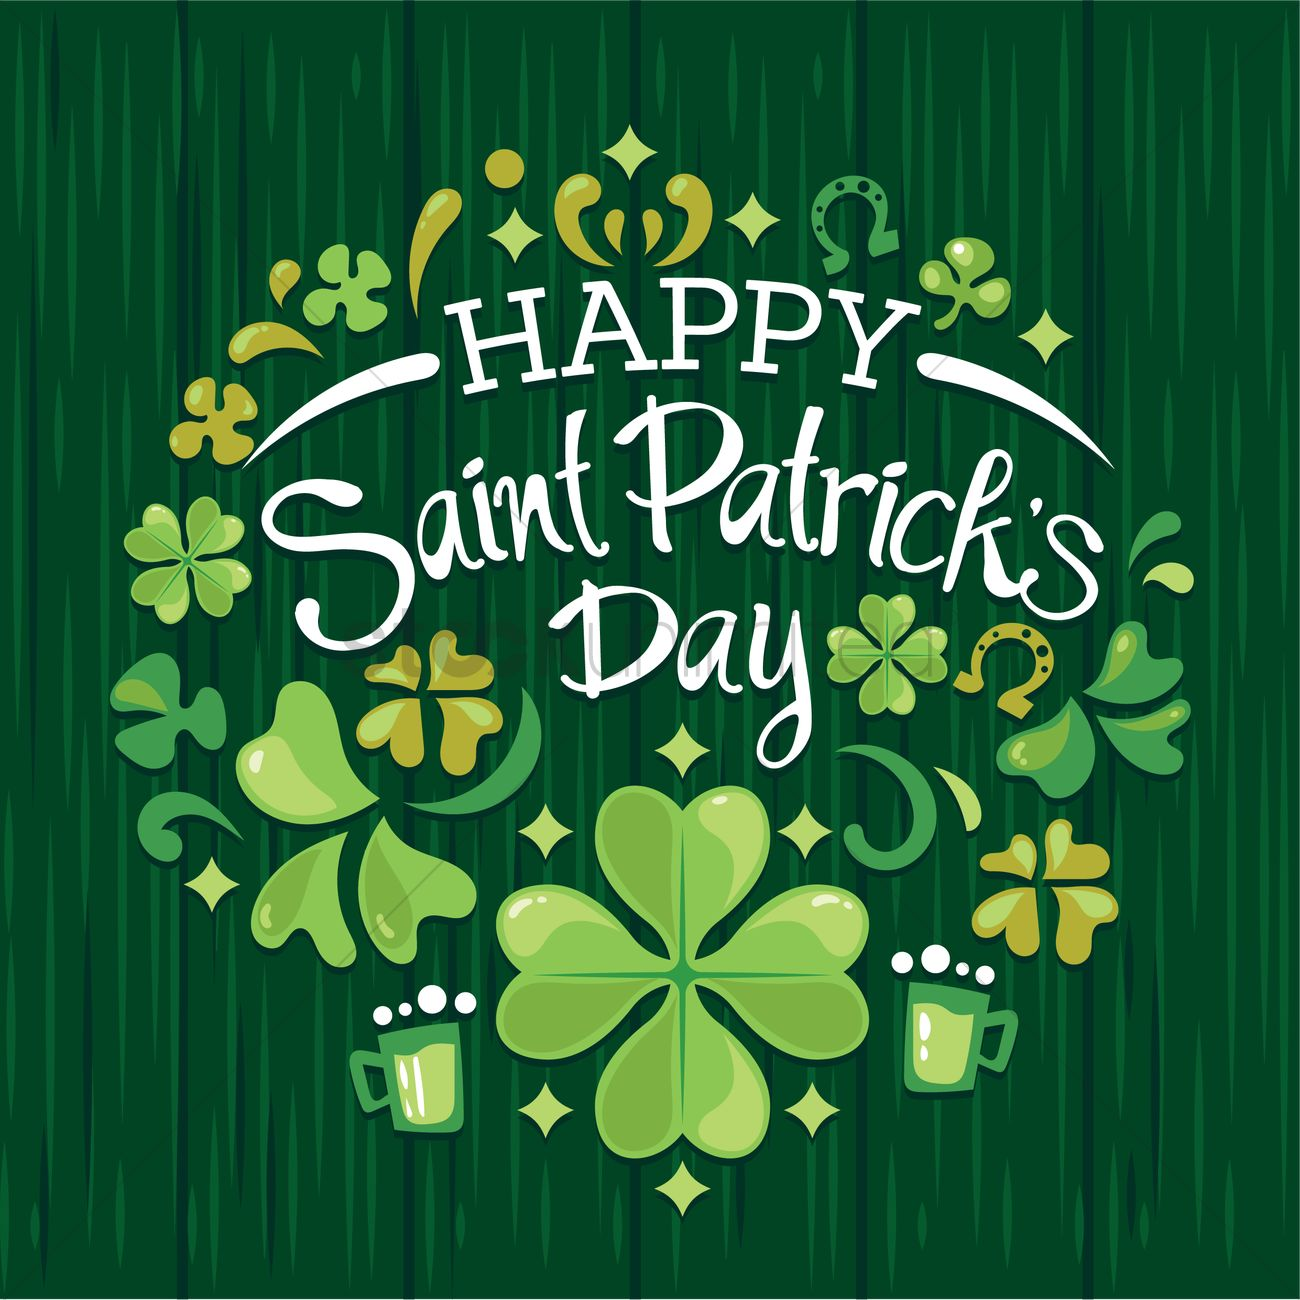 Happy st patricks day Vector Image - 1991597 | StockUnlimited